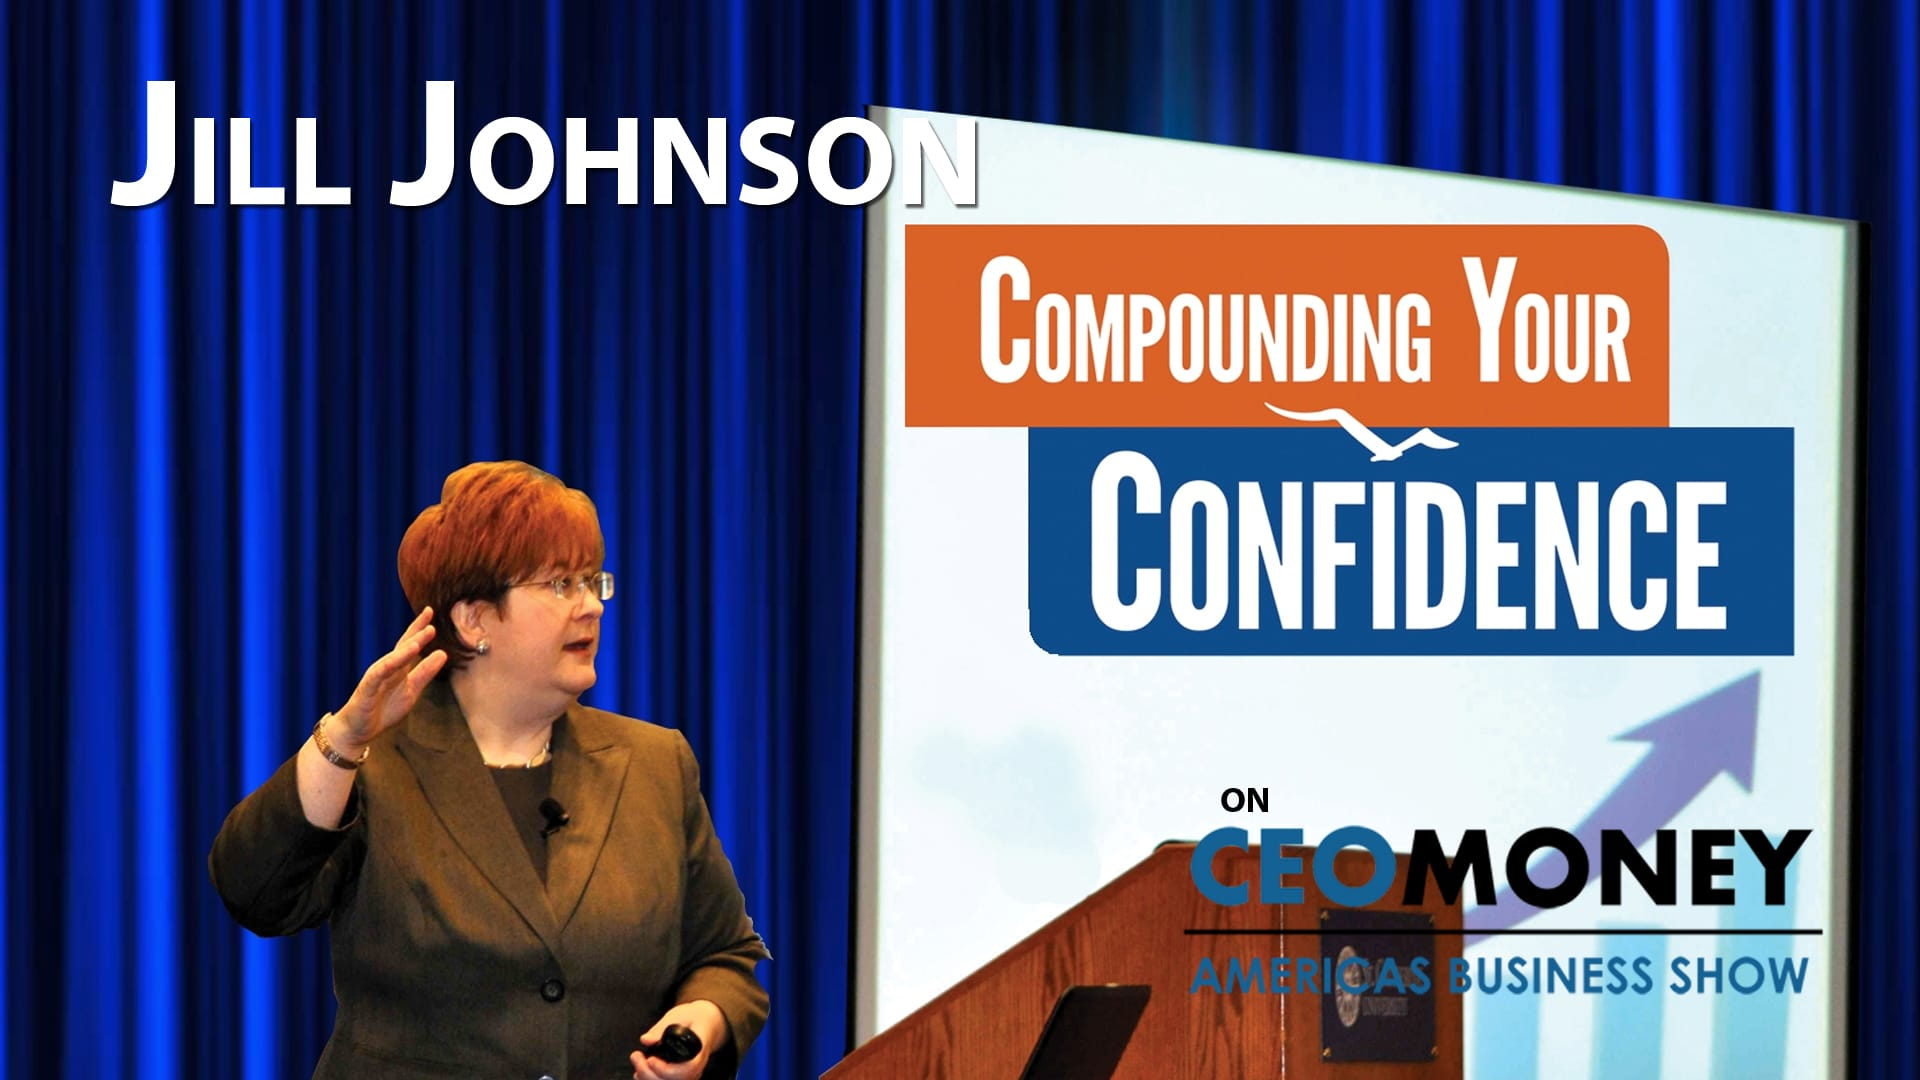 Jill Johnson has more than 20 years experience coaching businesses through challenging situations